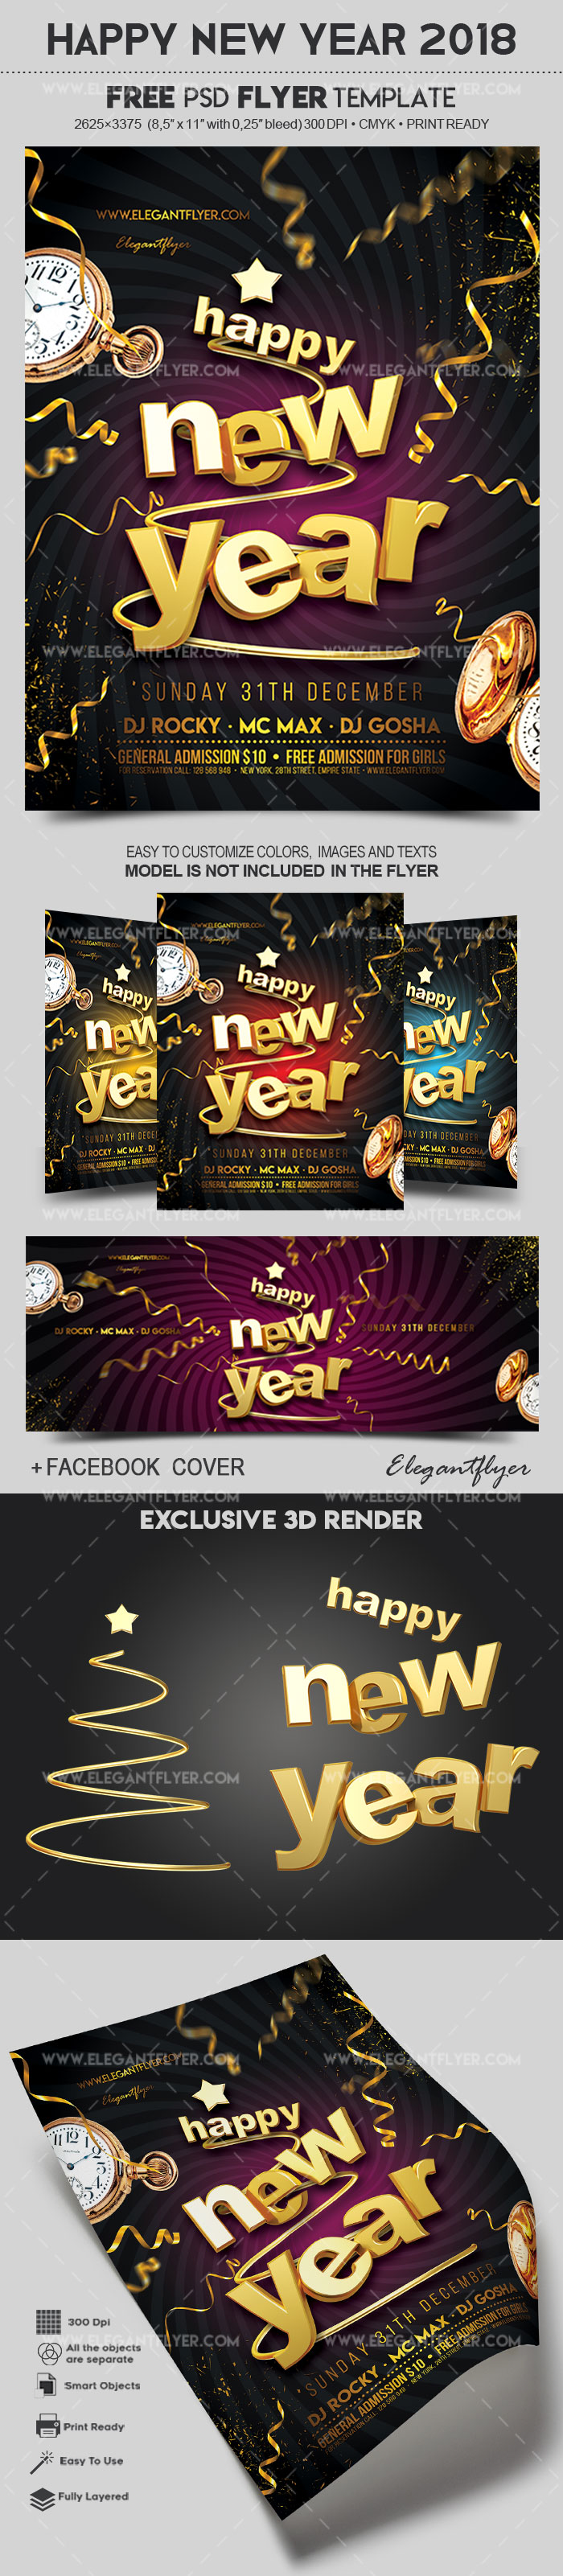 Happy New Year 2018     Free Flyer PSD Template     by ElegantFlyer Happy New Year 2018     Free Flyer PSD Template